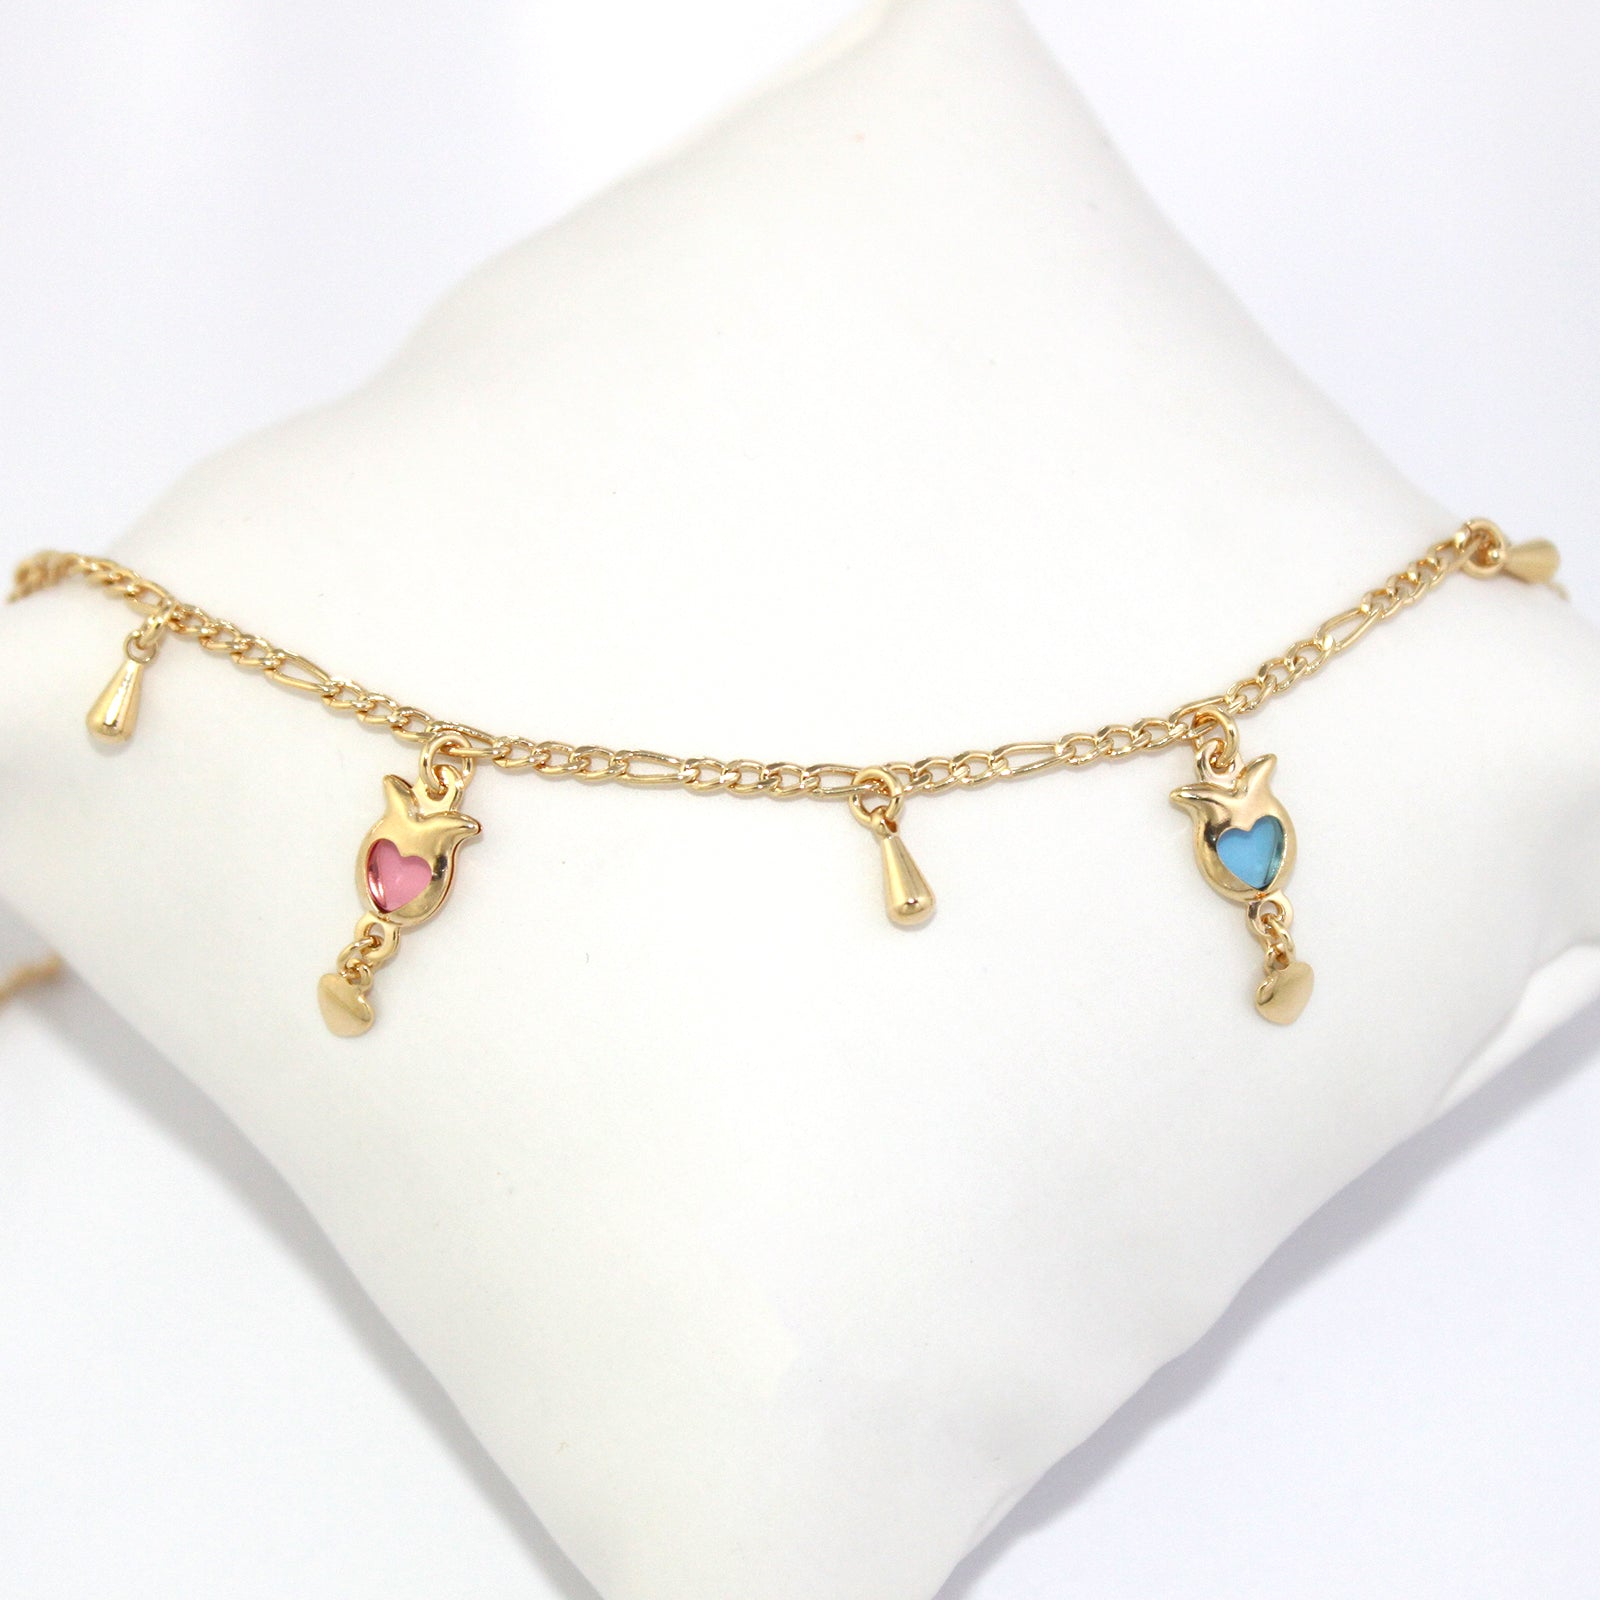 sterling silver bracelets gold rolo charms cherry adornment with a enamel delightful caymancode chain charm anklet ankle cute